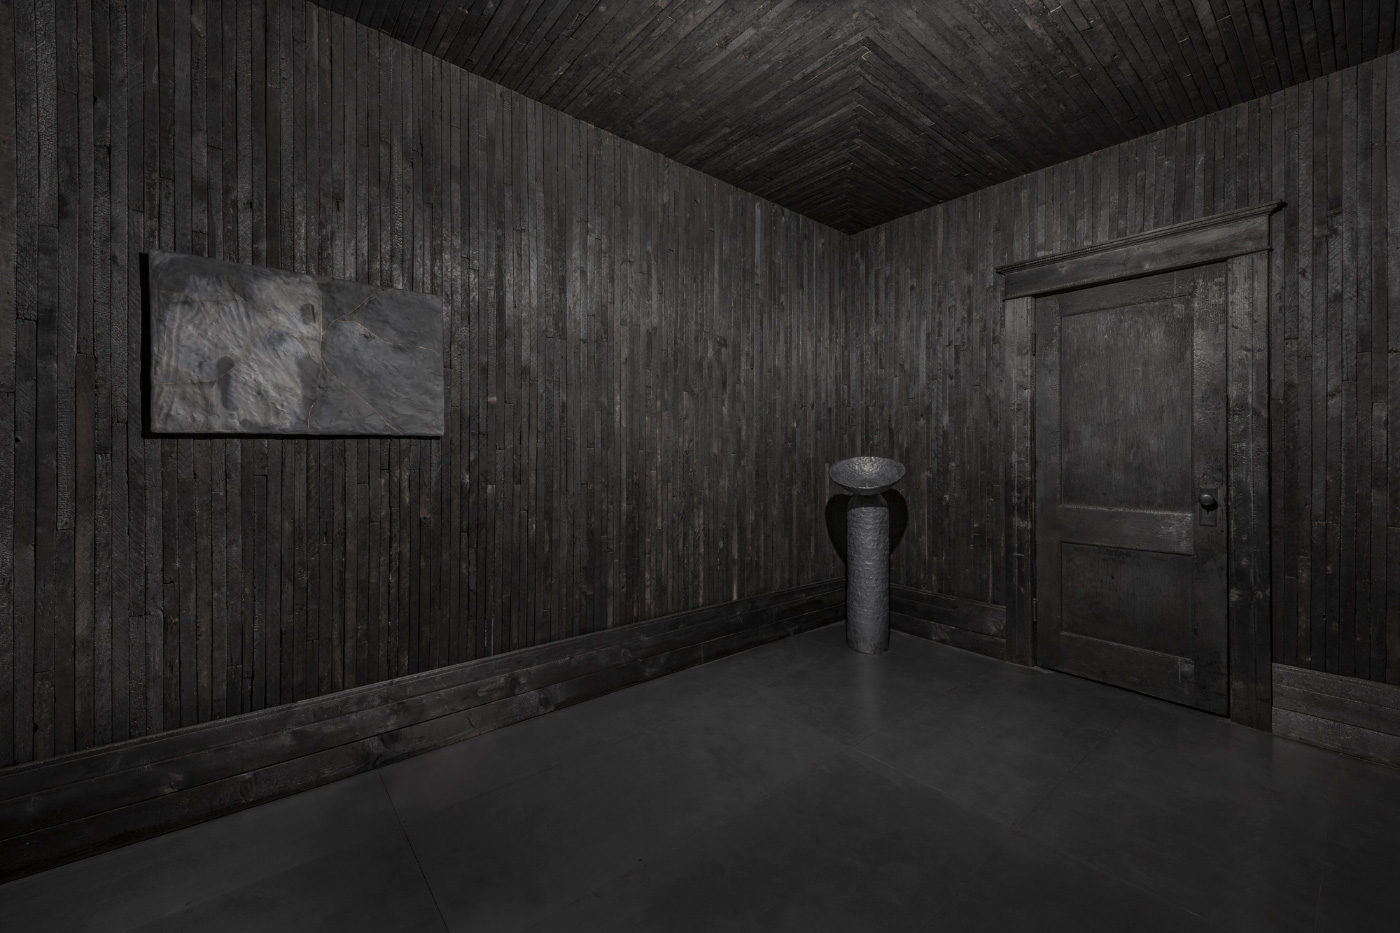 Interior of an all-black tile room, designed by Anders Rohwald